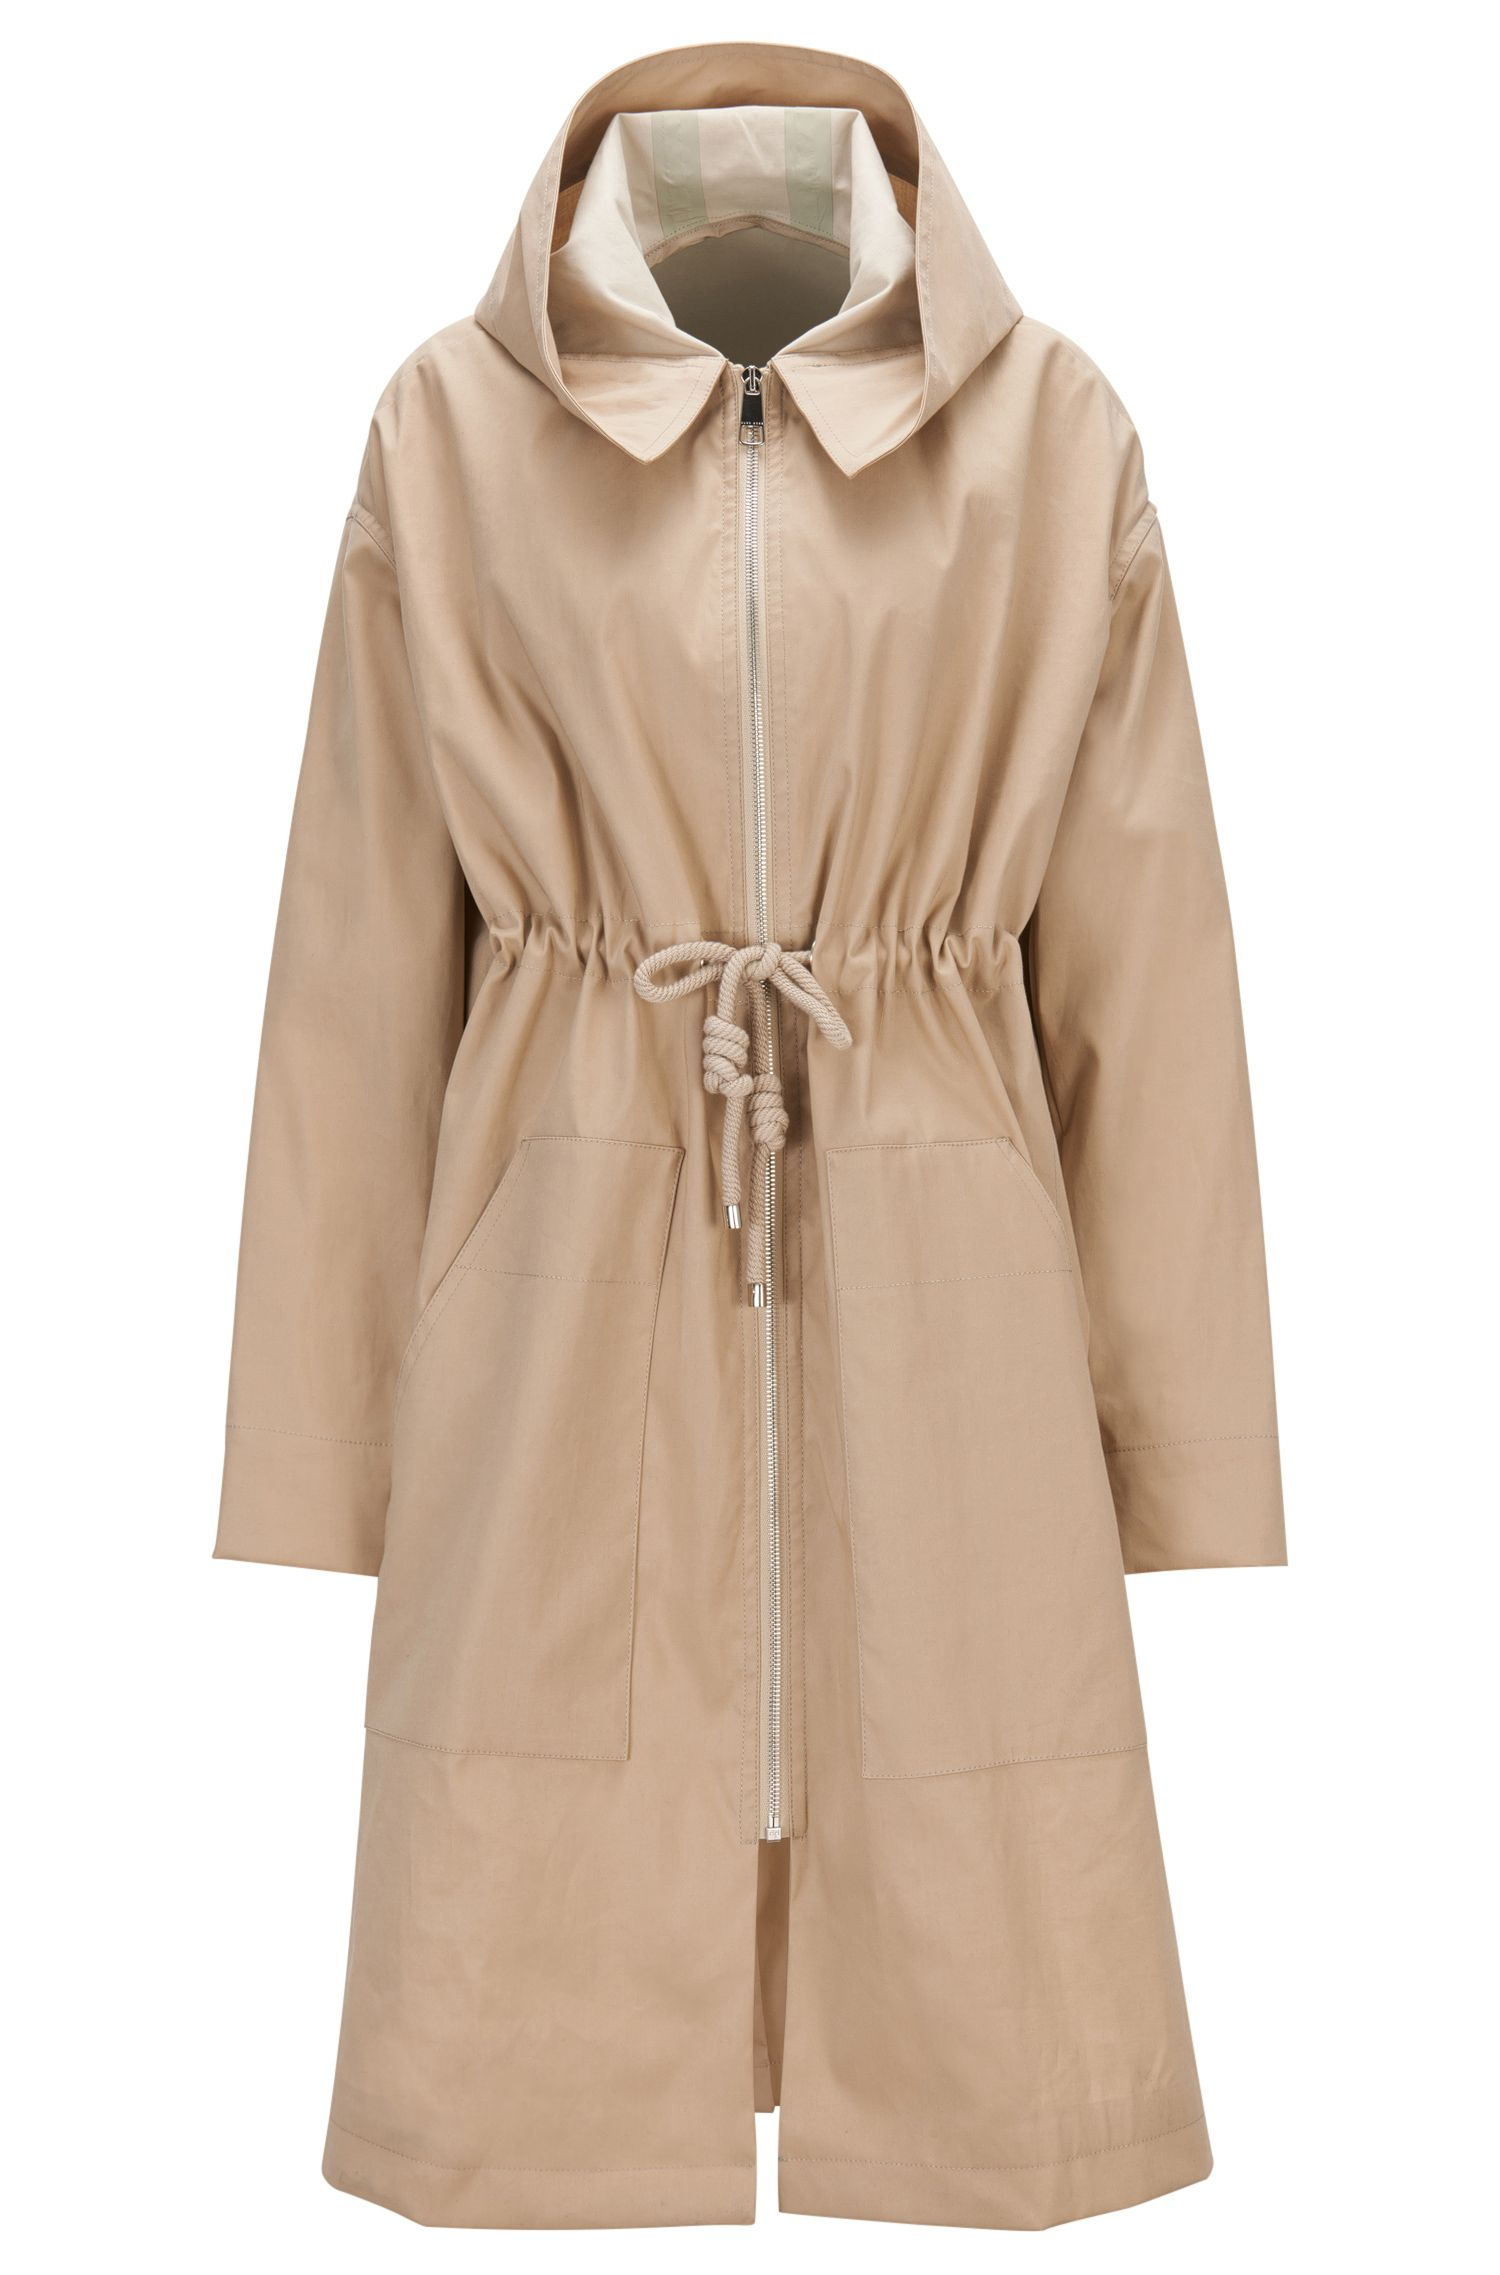 Water-repellent cotton-blend parka with drawstring waist